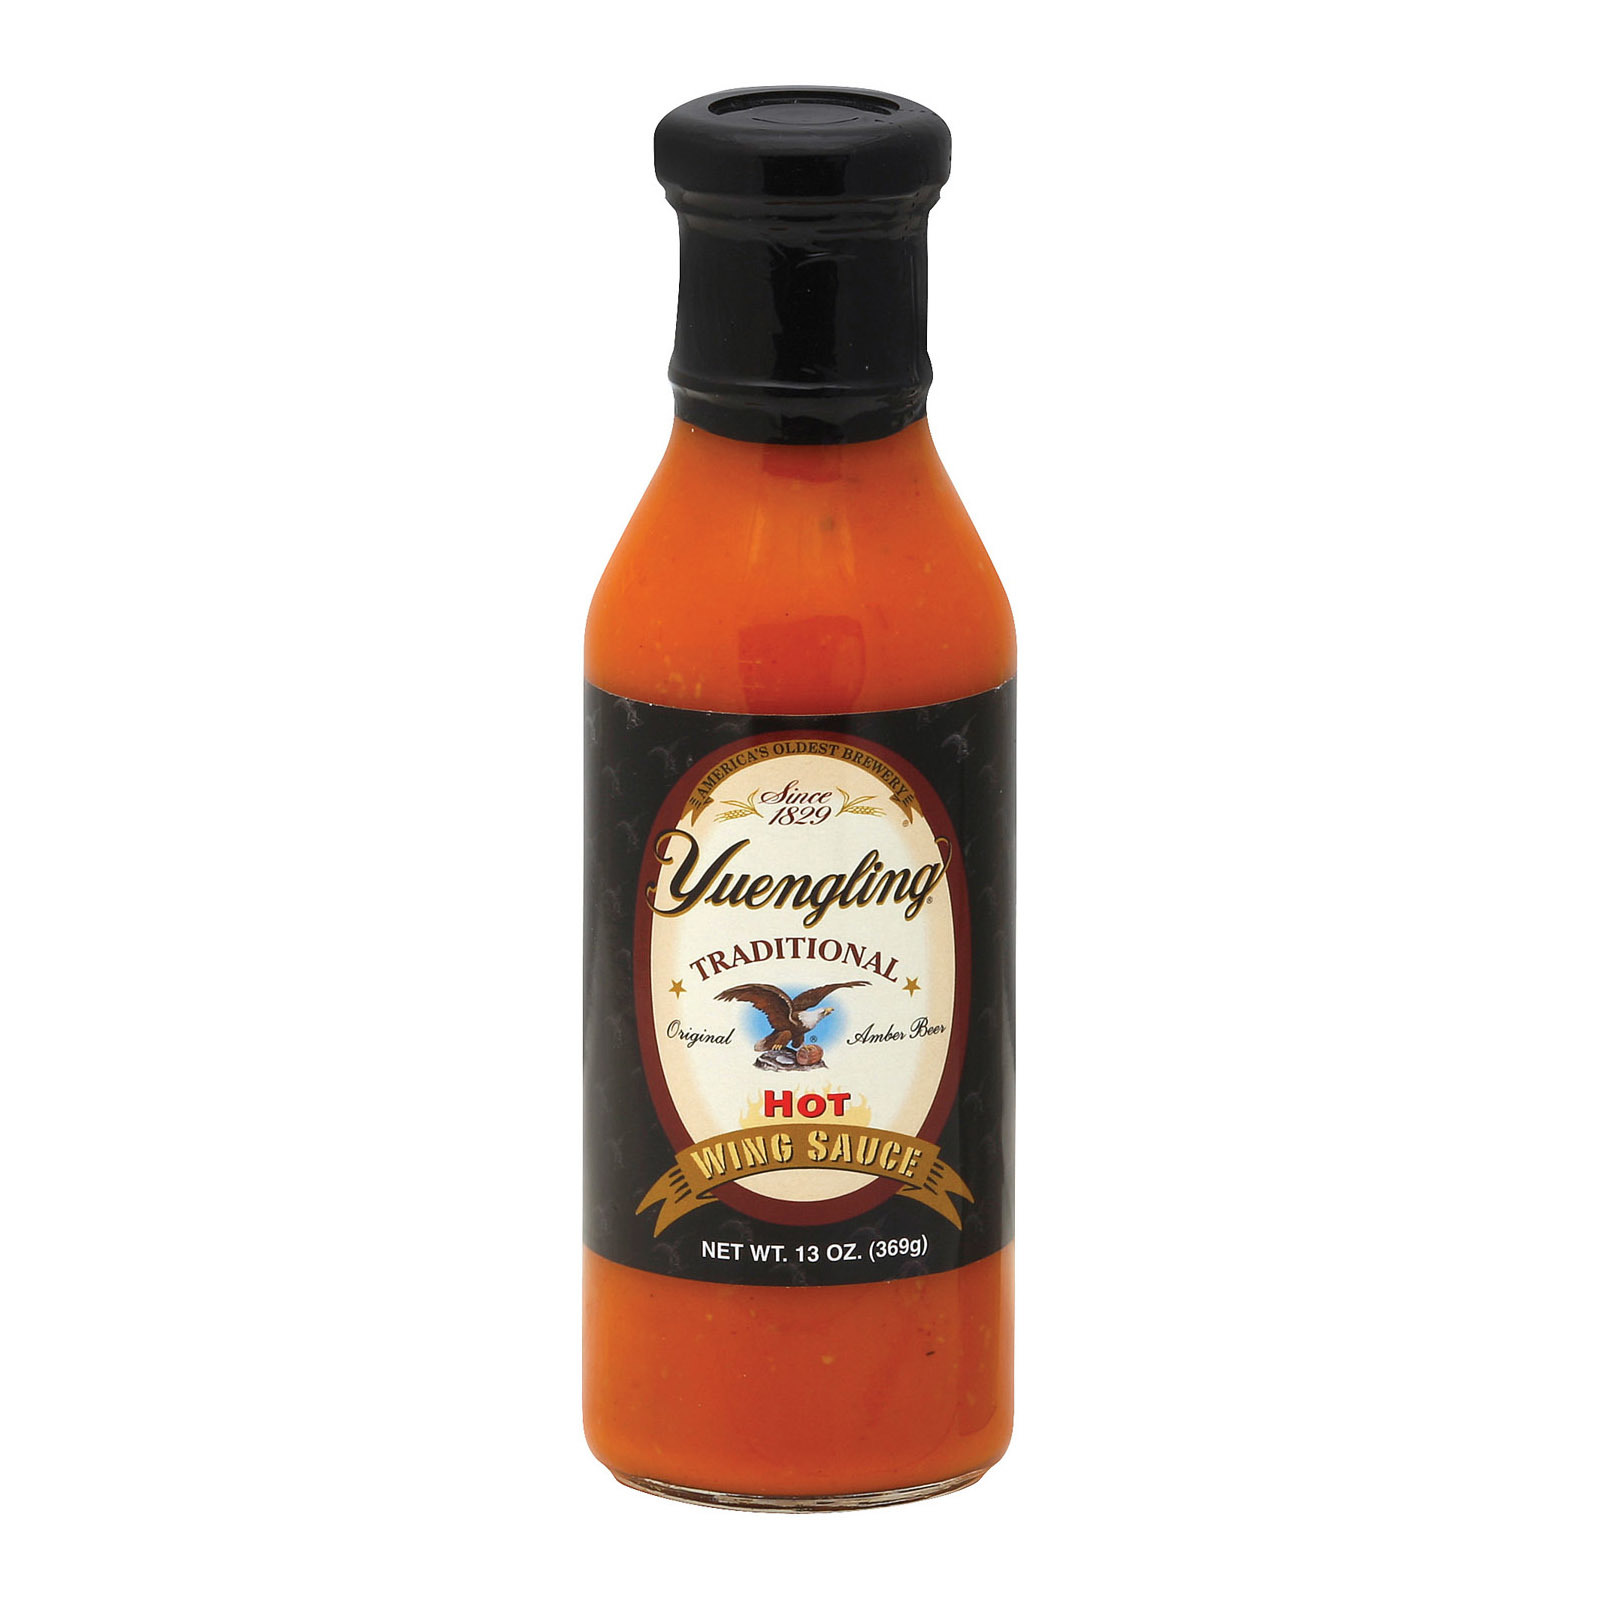 Yuengling Sauces Wing Sauce - Hot - Case of 6 - 13 oz.